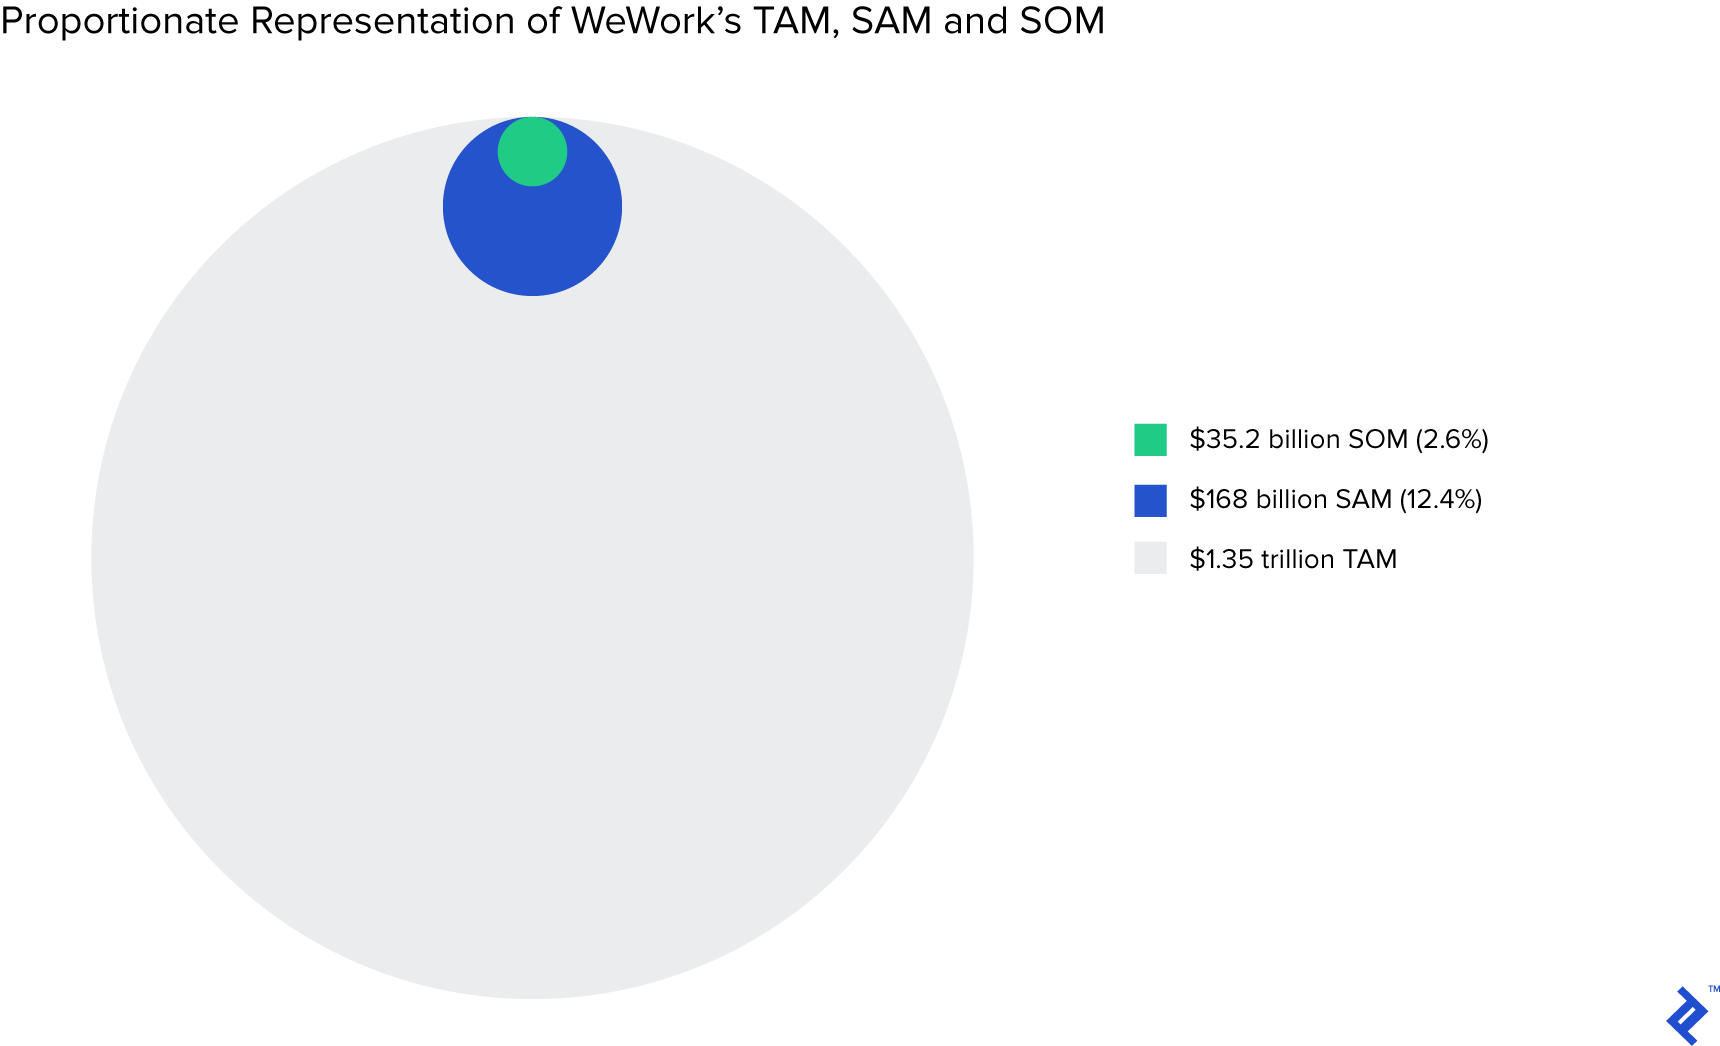 Graph depicting the proportionate representation of WeWork's TAM, SAM, and SOM.